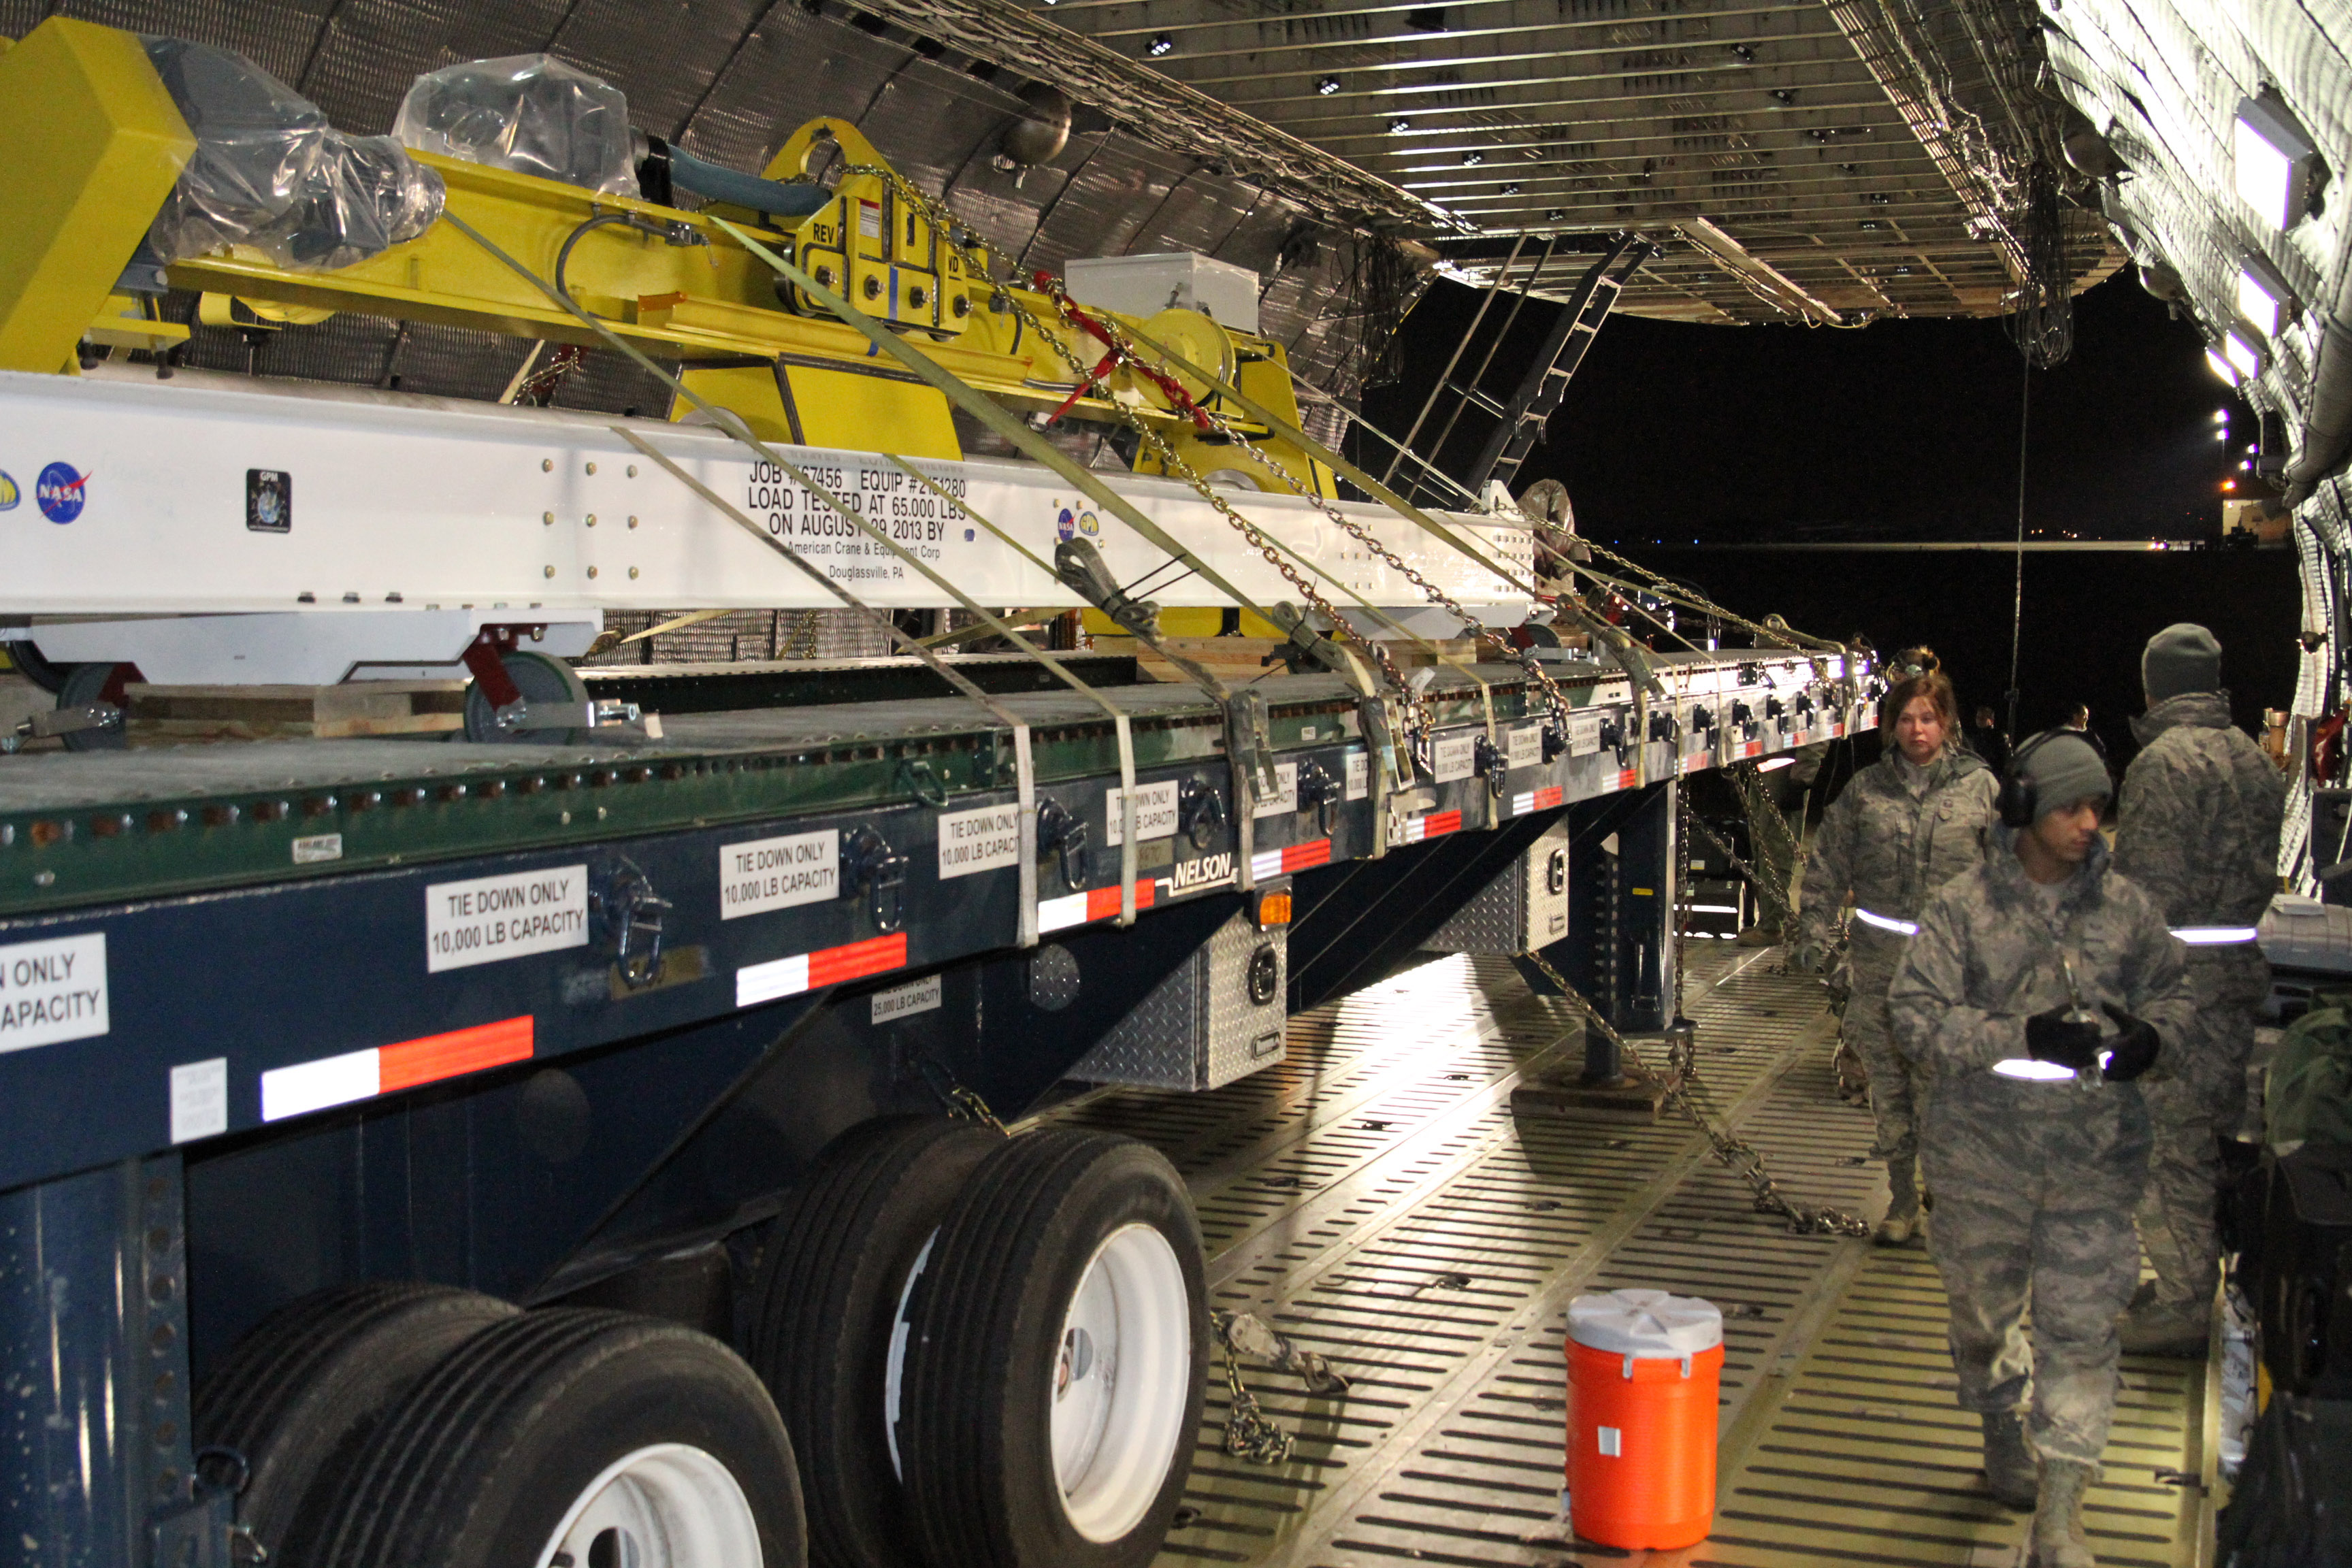 GPM's Roller Bed Truck Loaded on the Plane